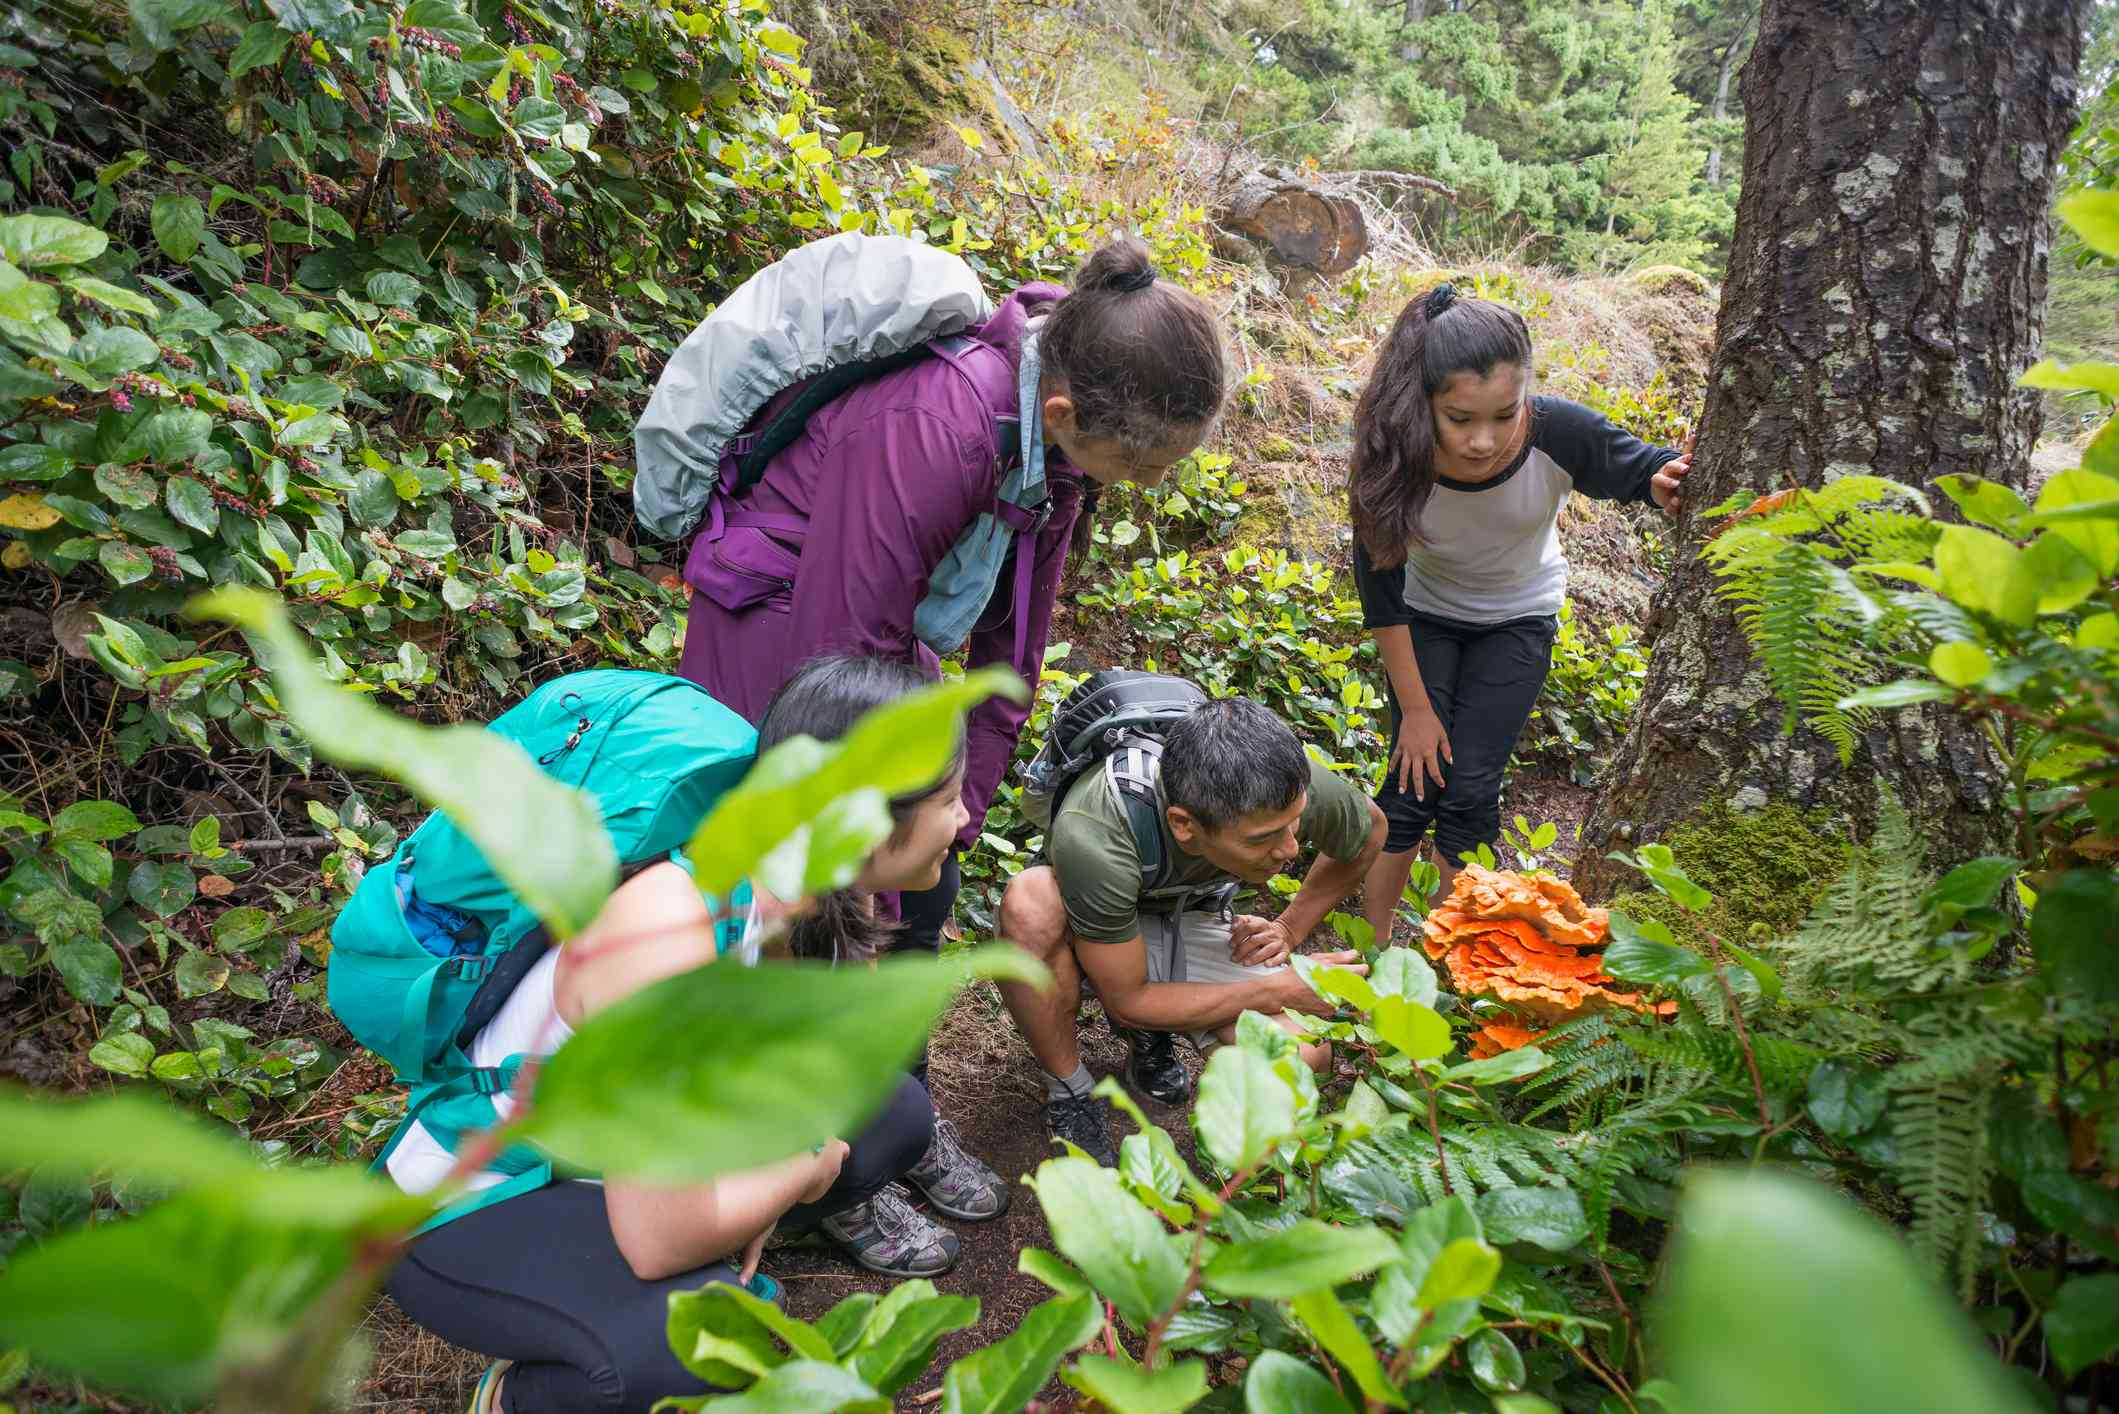 A group young girls with a man looks at an orange edible mushroom in the forest.